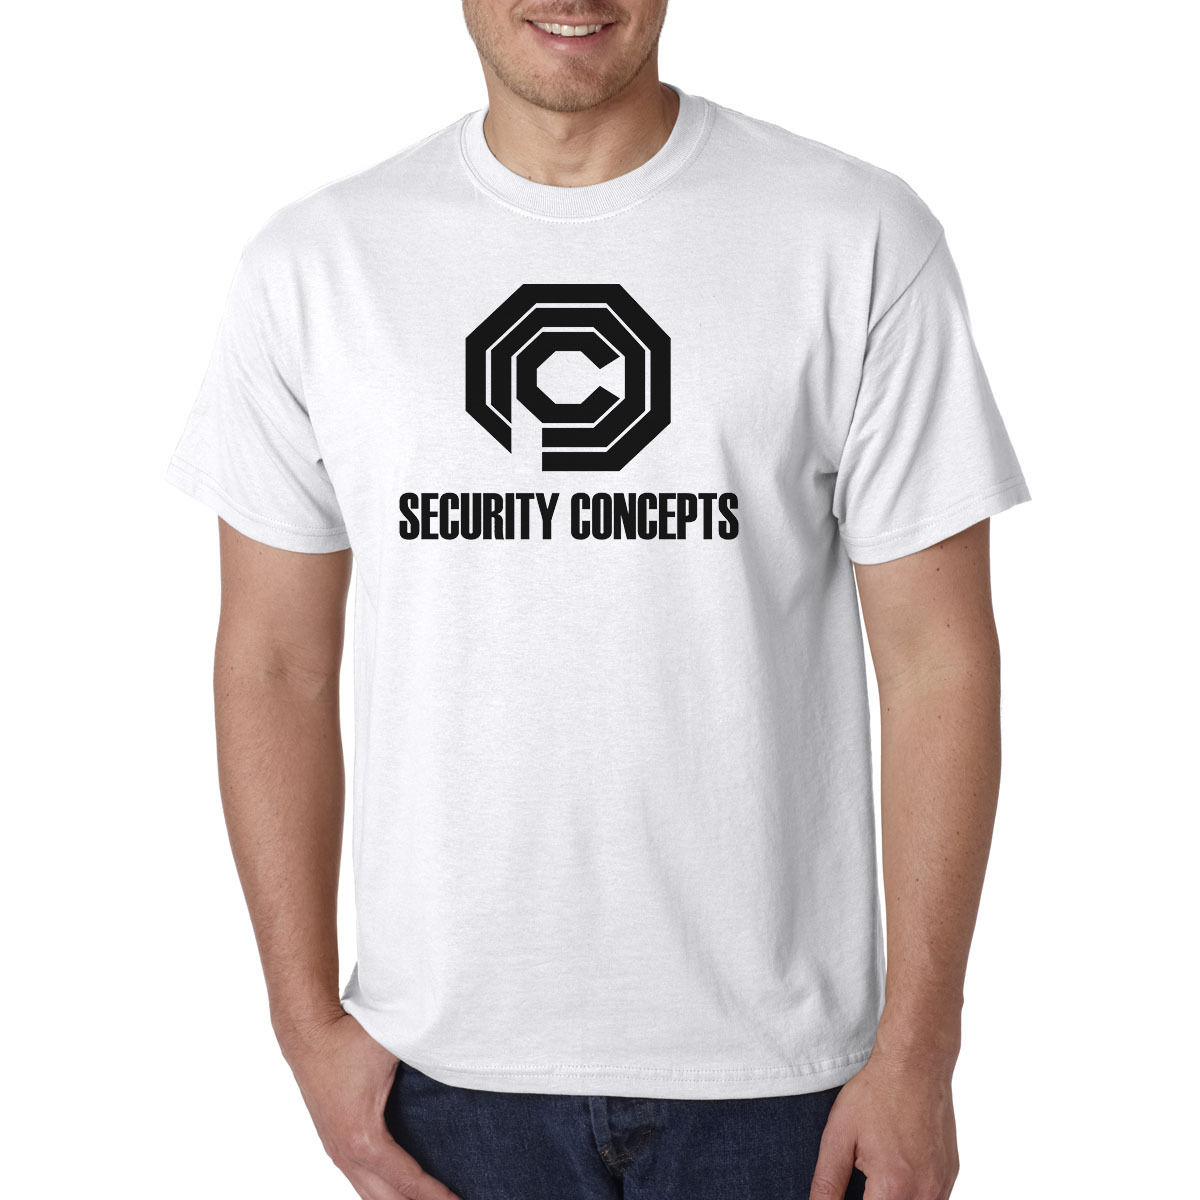 US $13 04 13% OFF|OCP Security Concepts T Shirt Omni Consumer Products  Robocop Sci Fi Tee Retro New 2017 Summer Fashion T Shirt Top-in T-Shirts  from